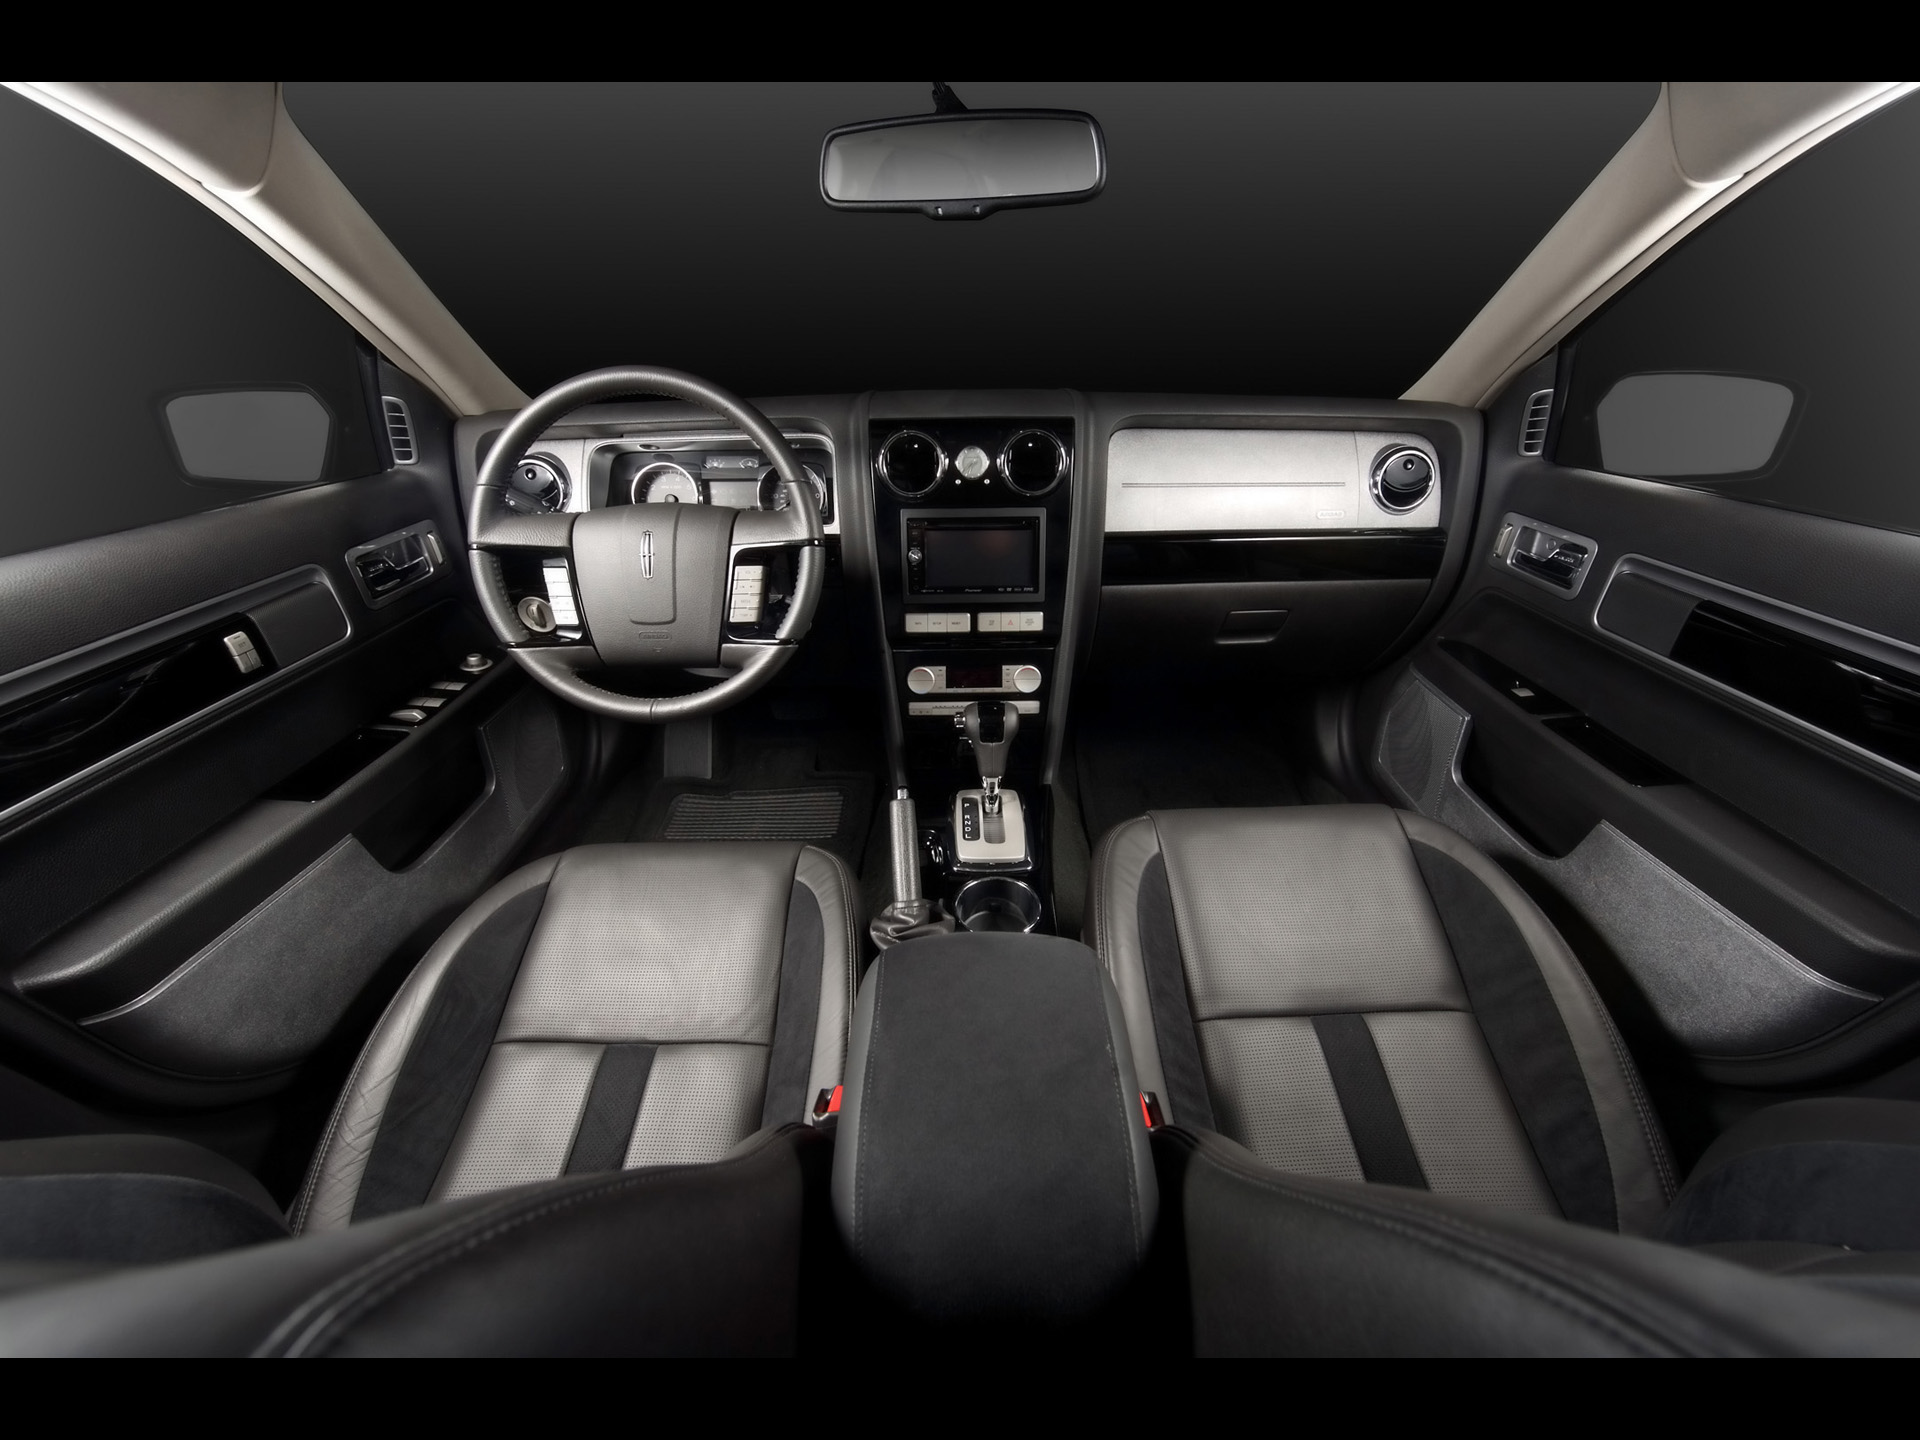 2007 Lincoln Mkz Towing Capacity >> Lincoln Mks Interior Dimensions | www.indiepedia.org